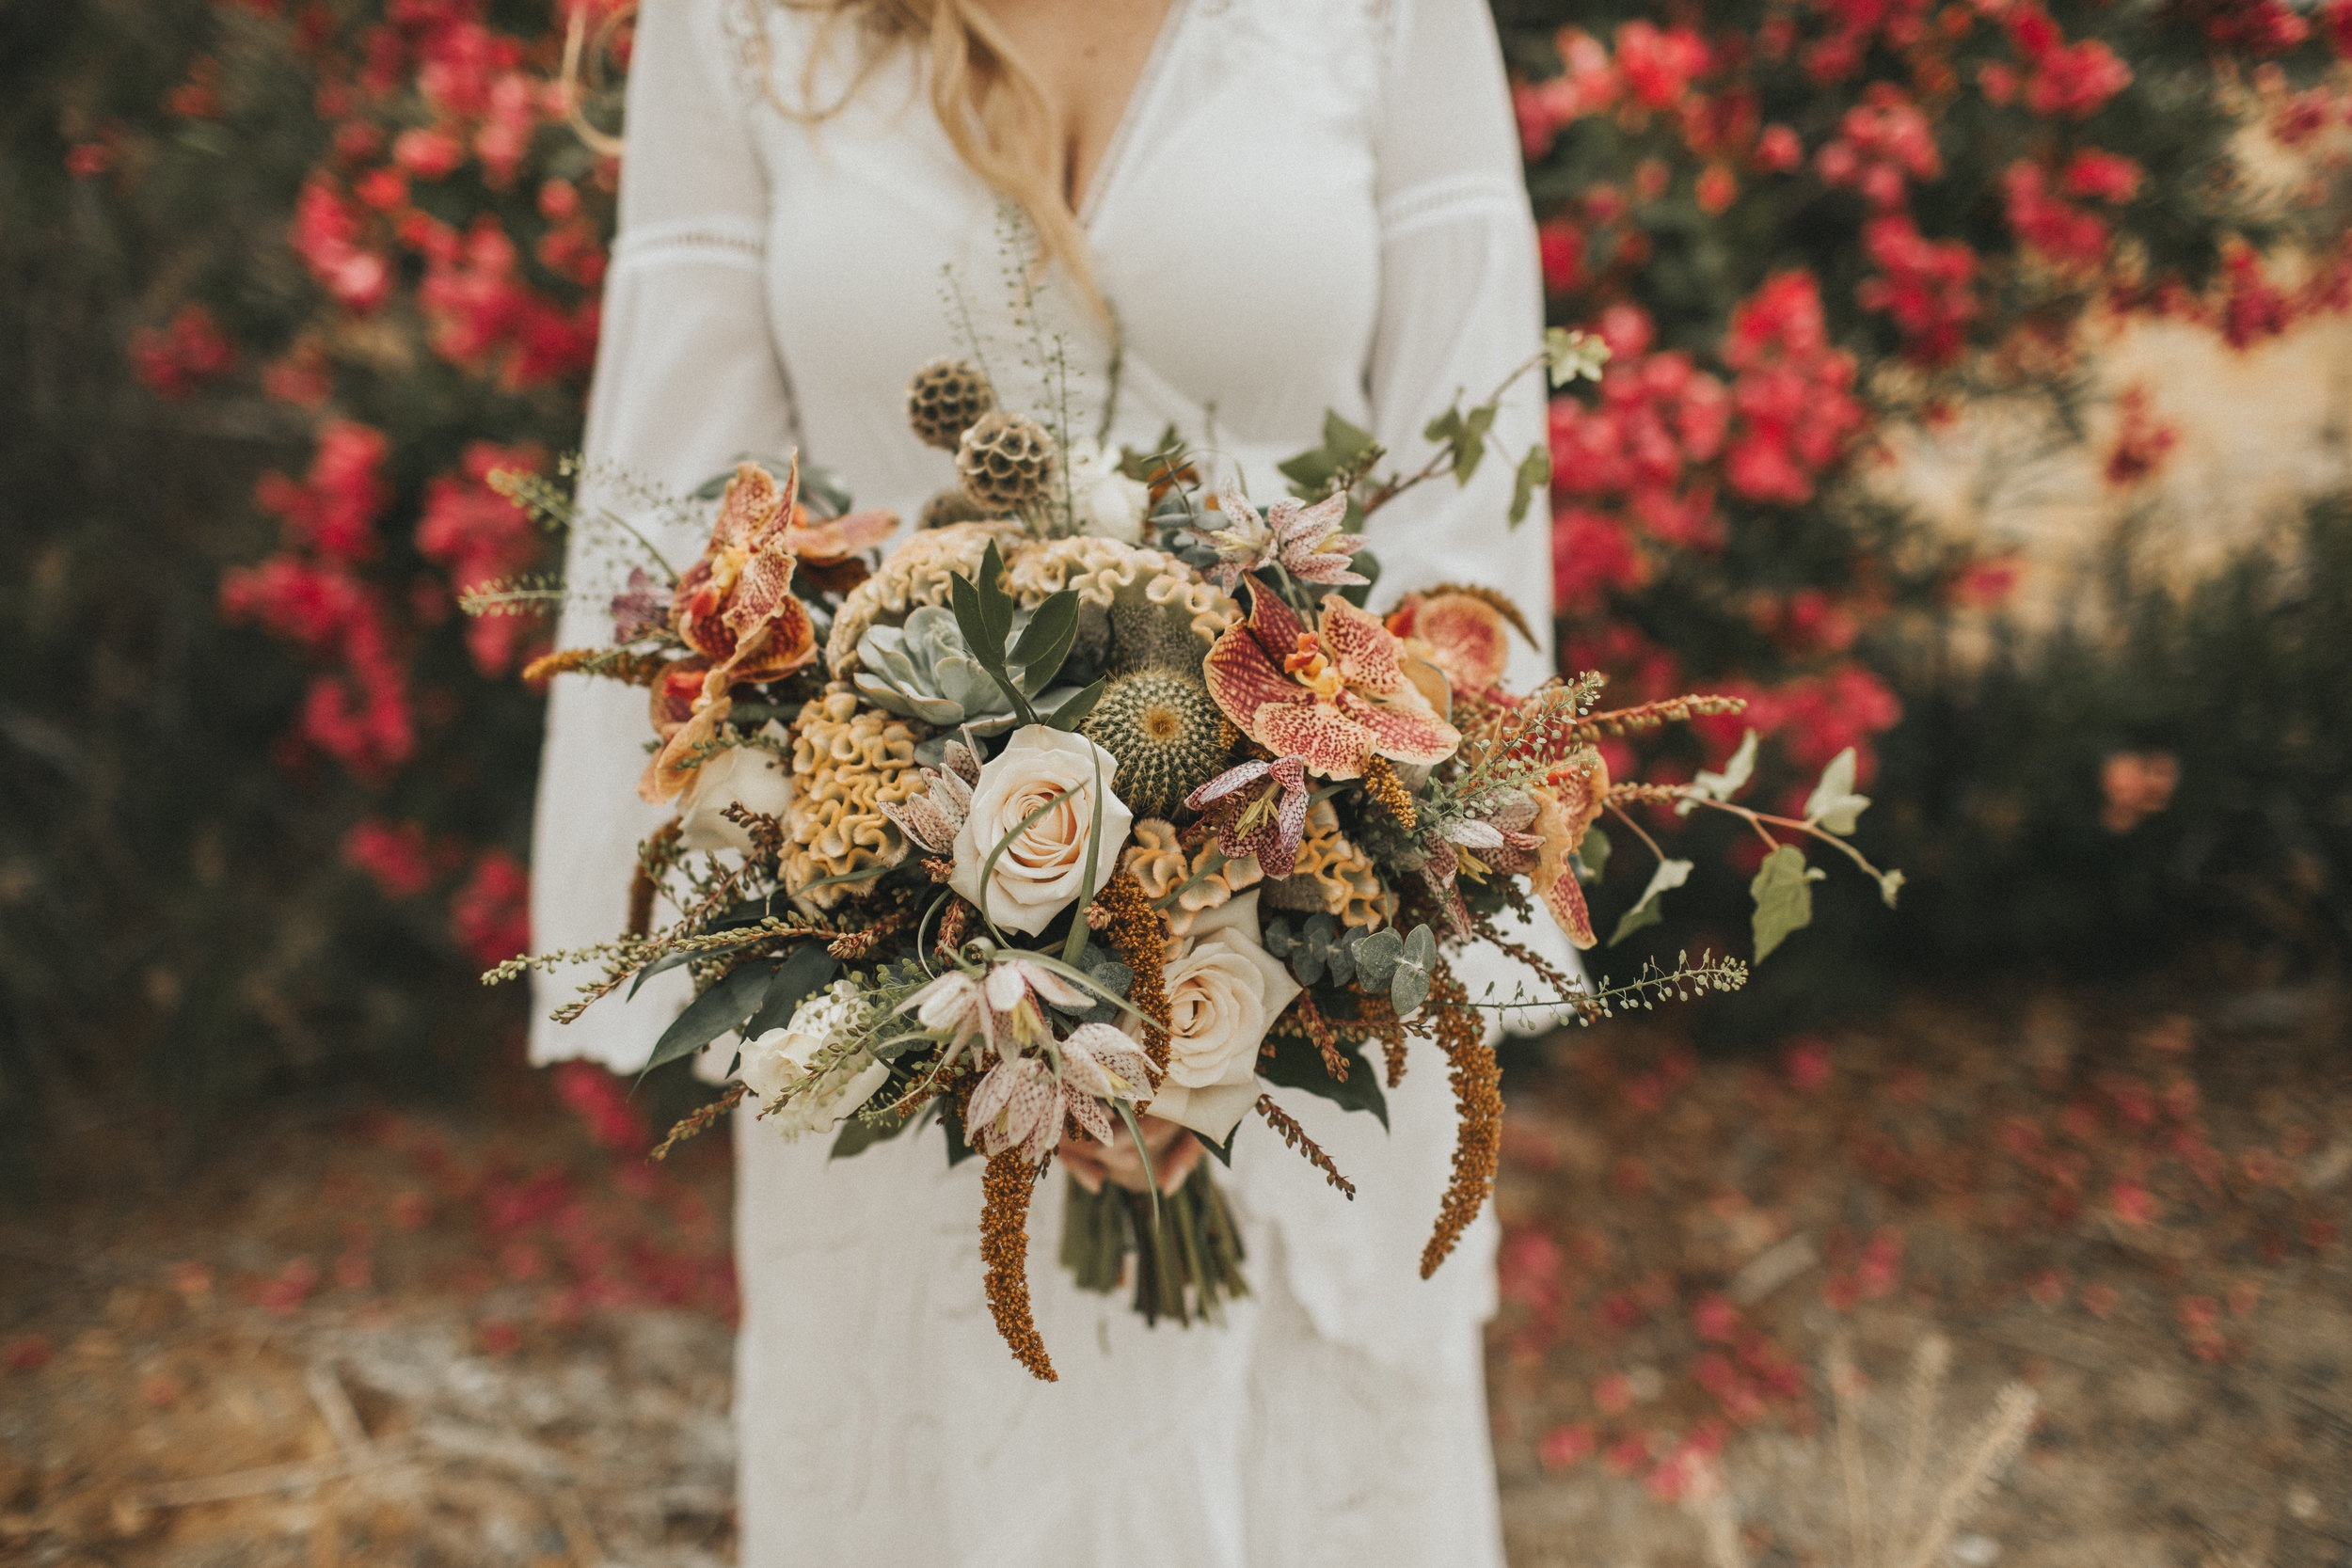 Vaso Bello bouquet photographed by  Tree Of Life Films